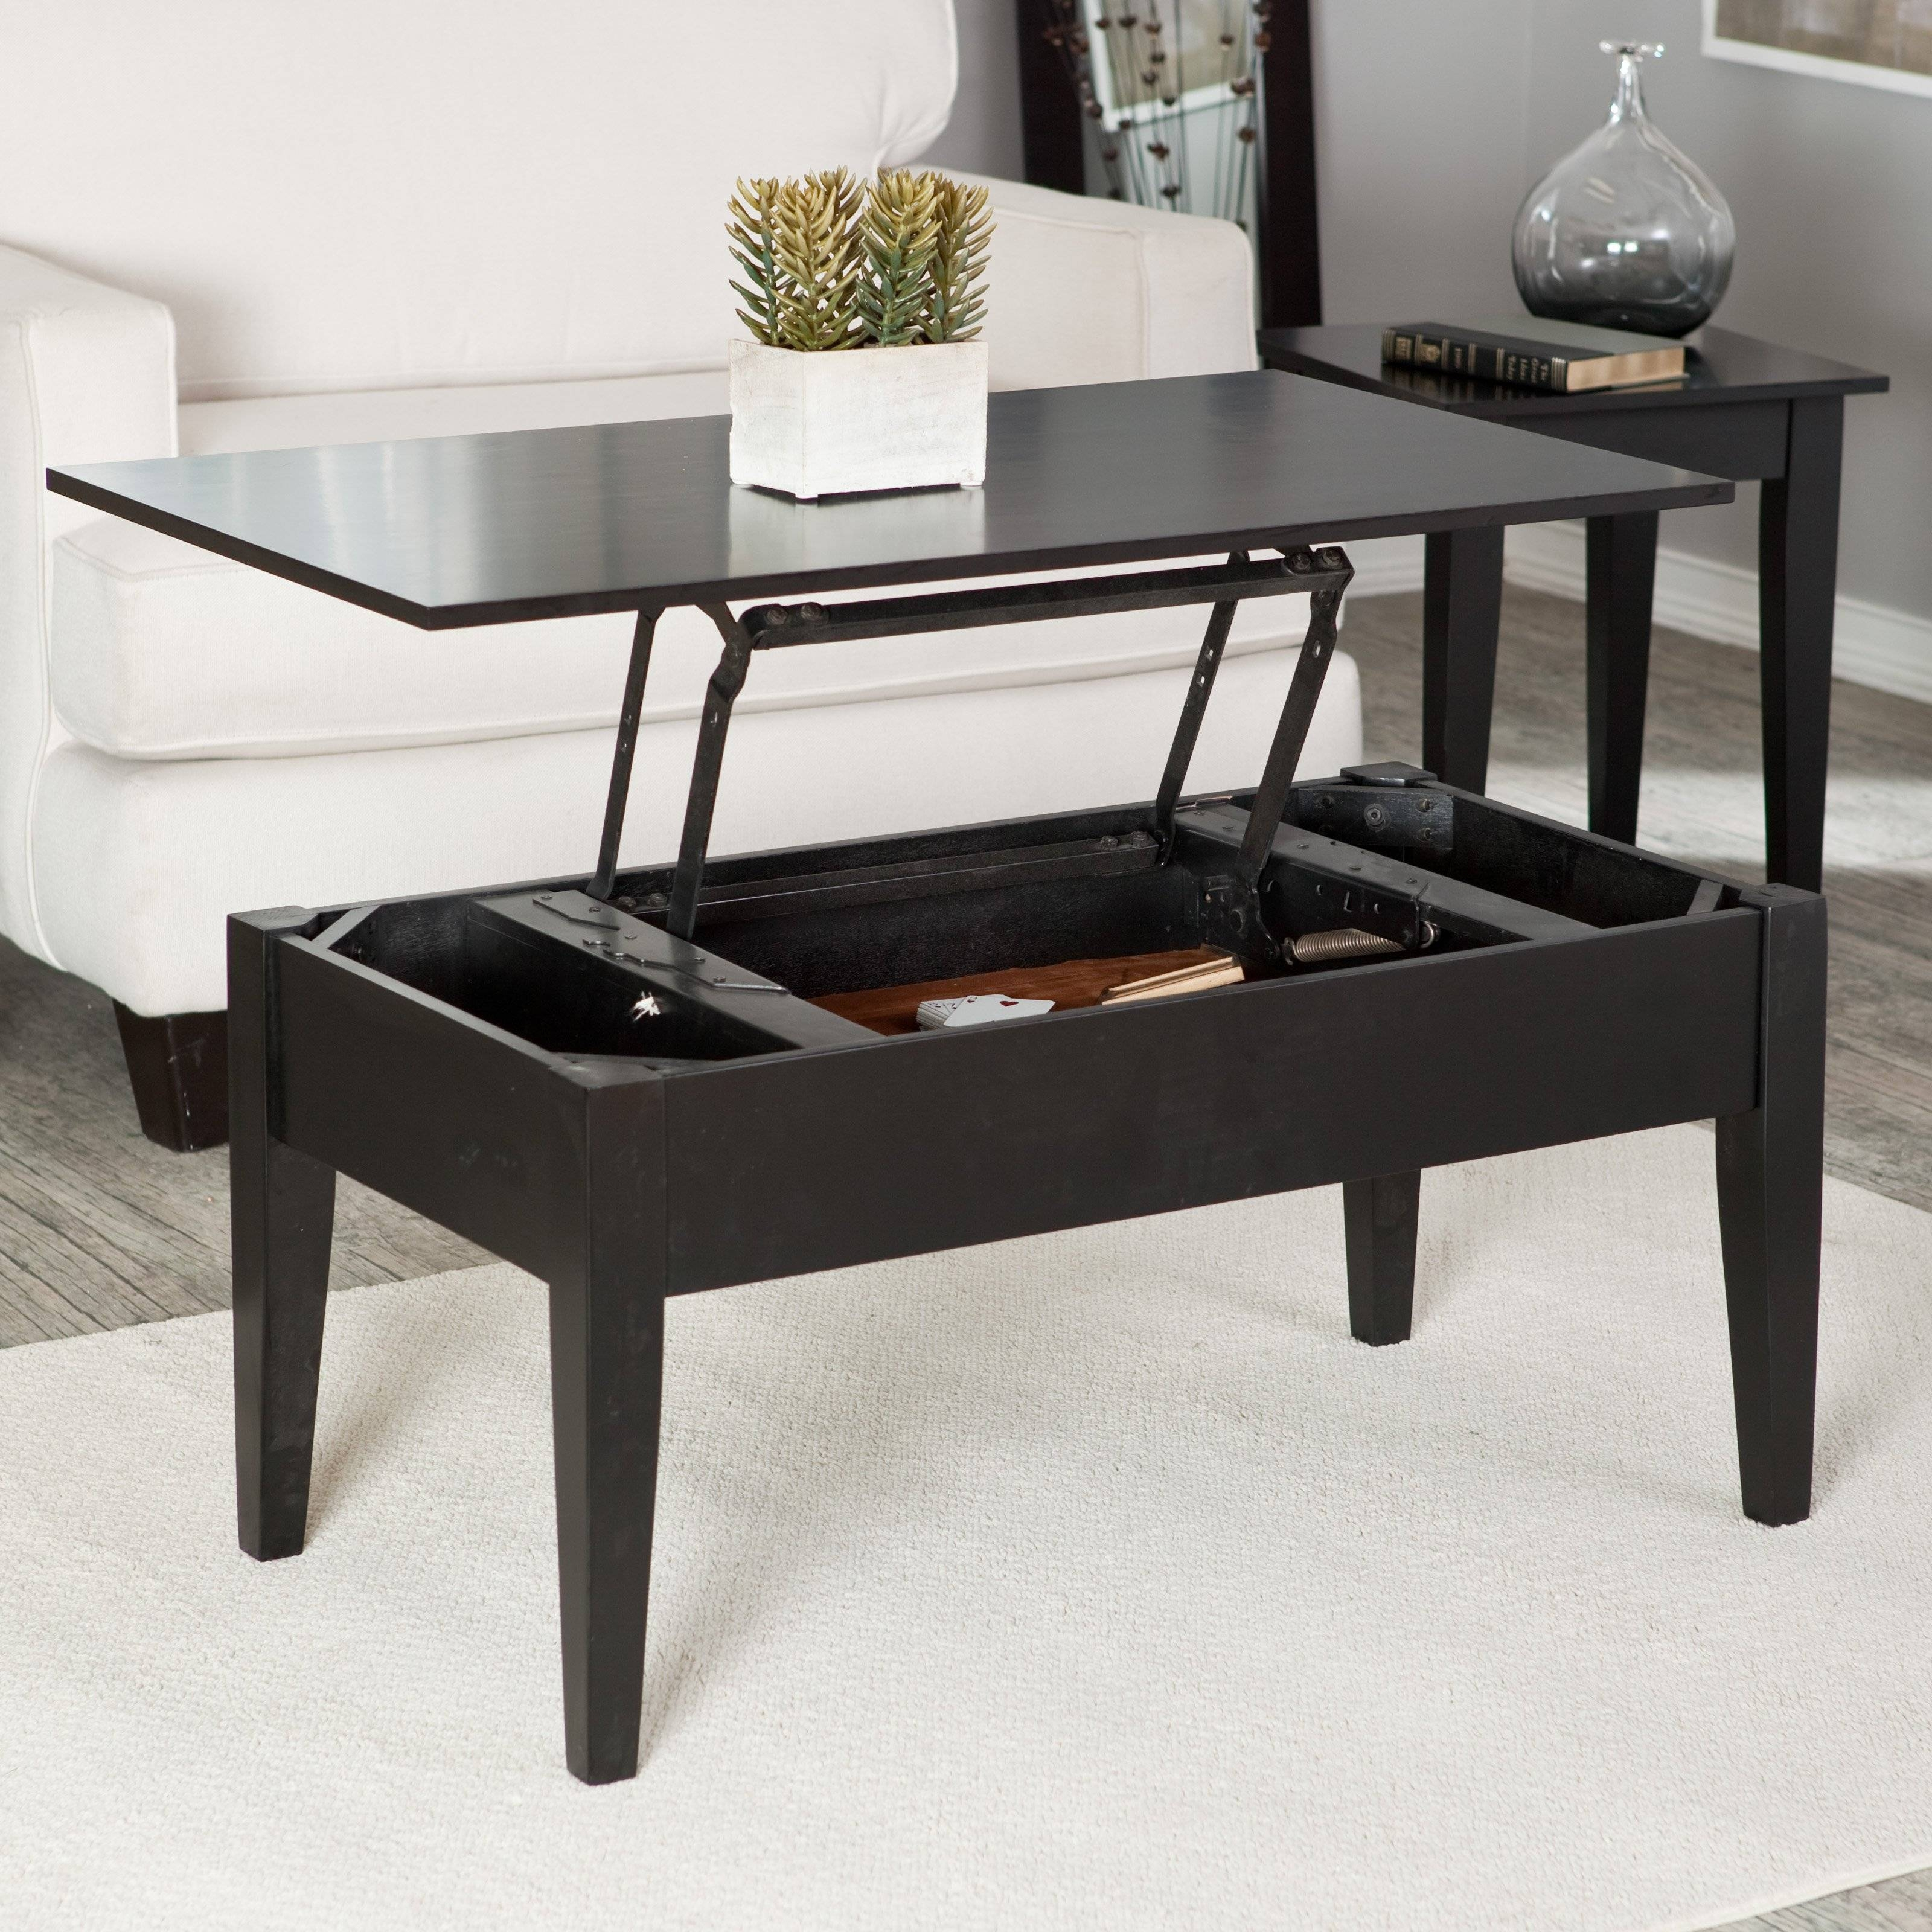 Turner Lift Top Coffee Table - Black - Walmart intended for Pull Up Coffee Tables (Image 30 of 30)